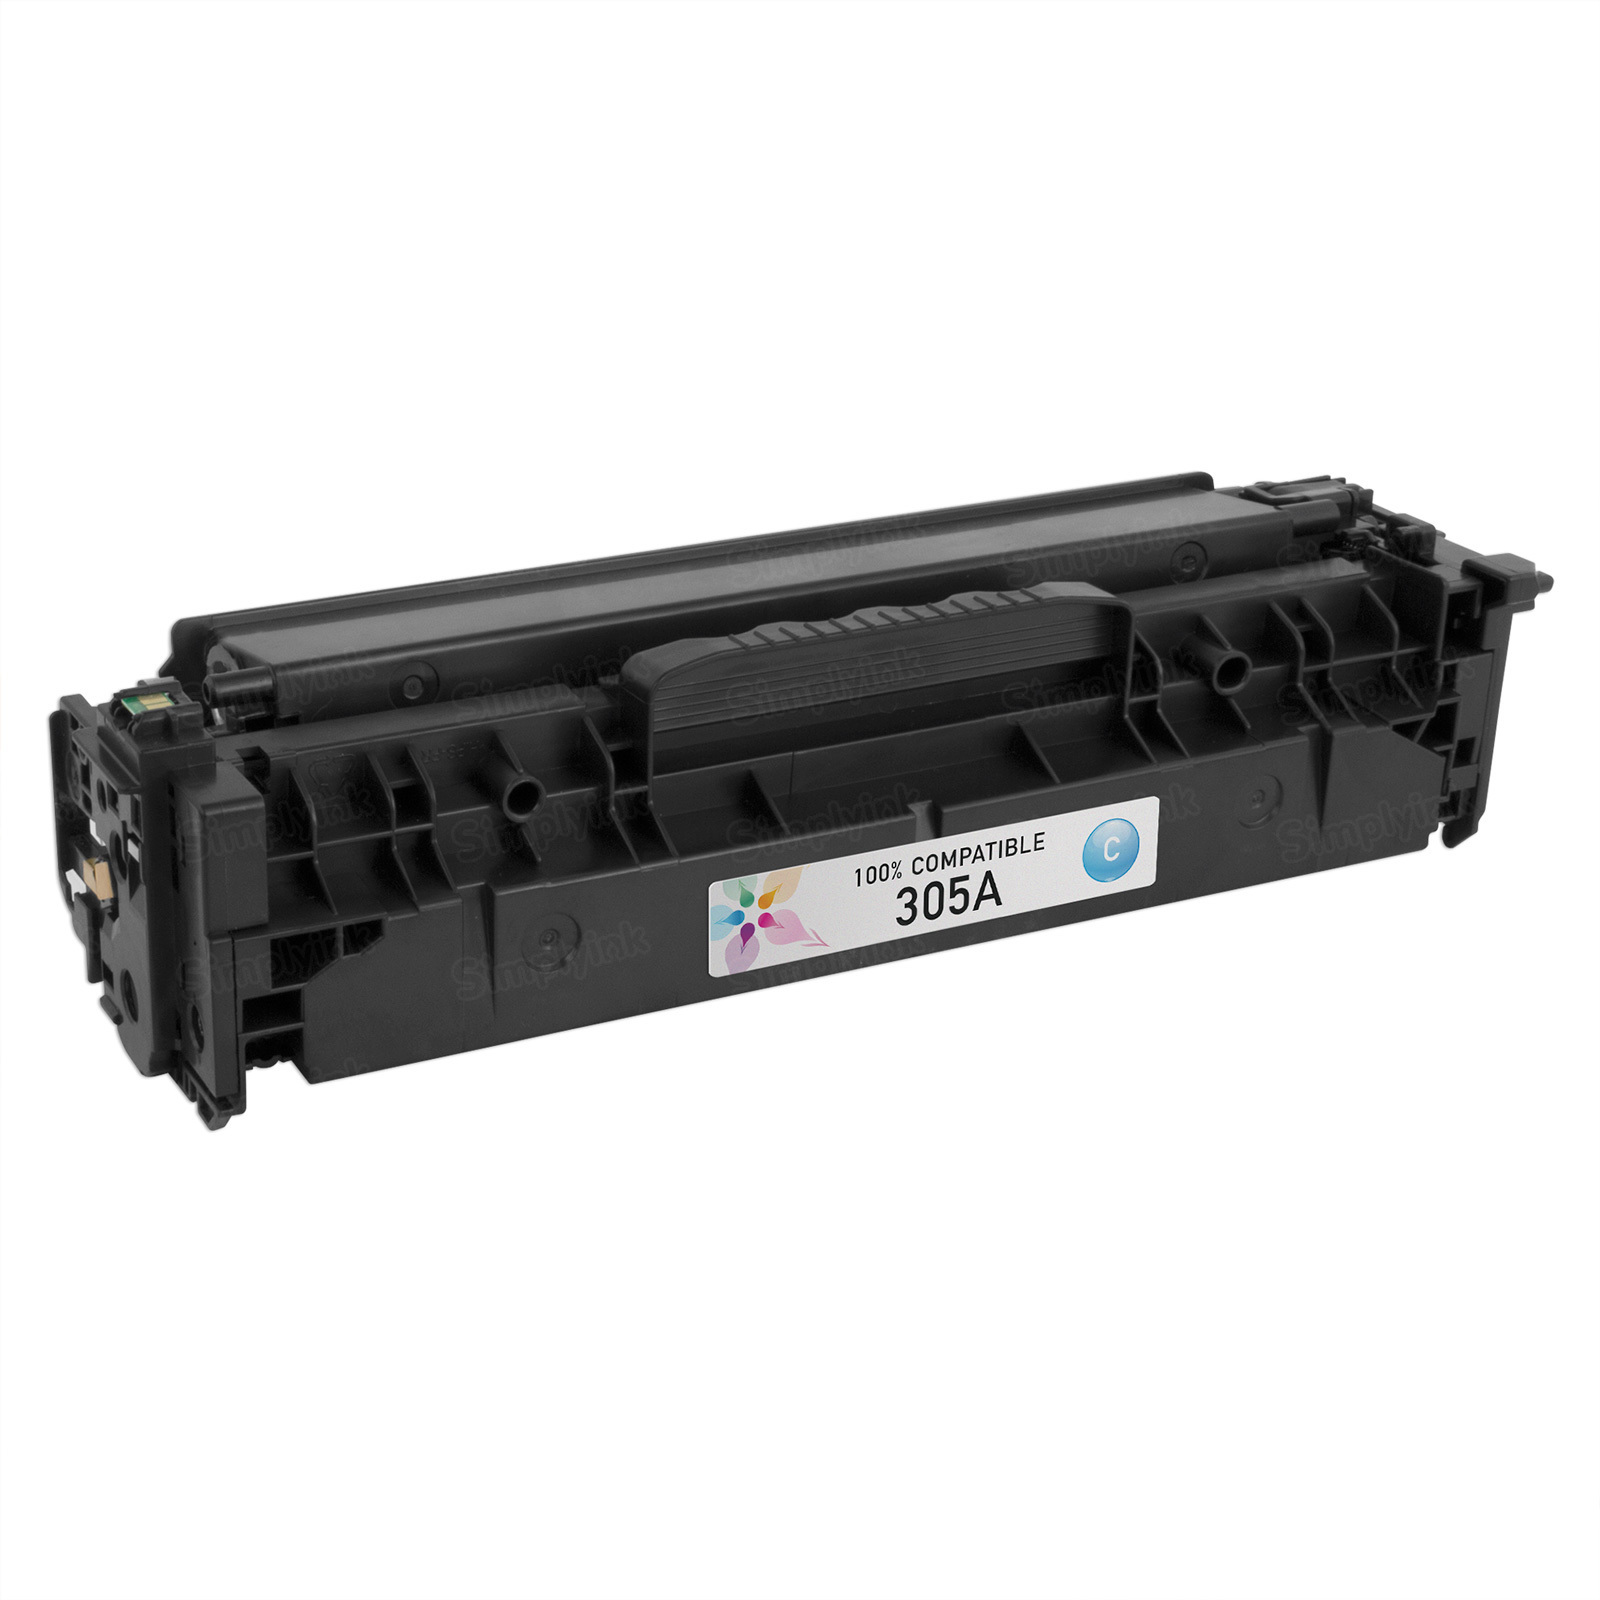 Replacement Cyan Toner for HP 305A